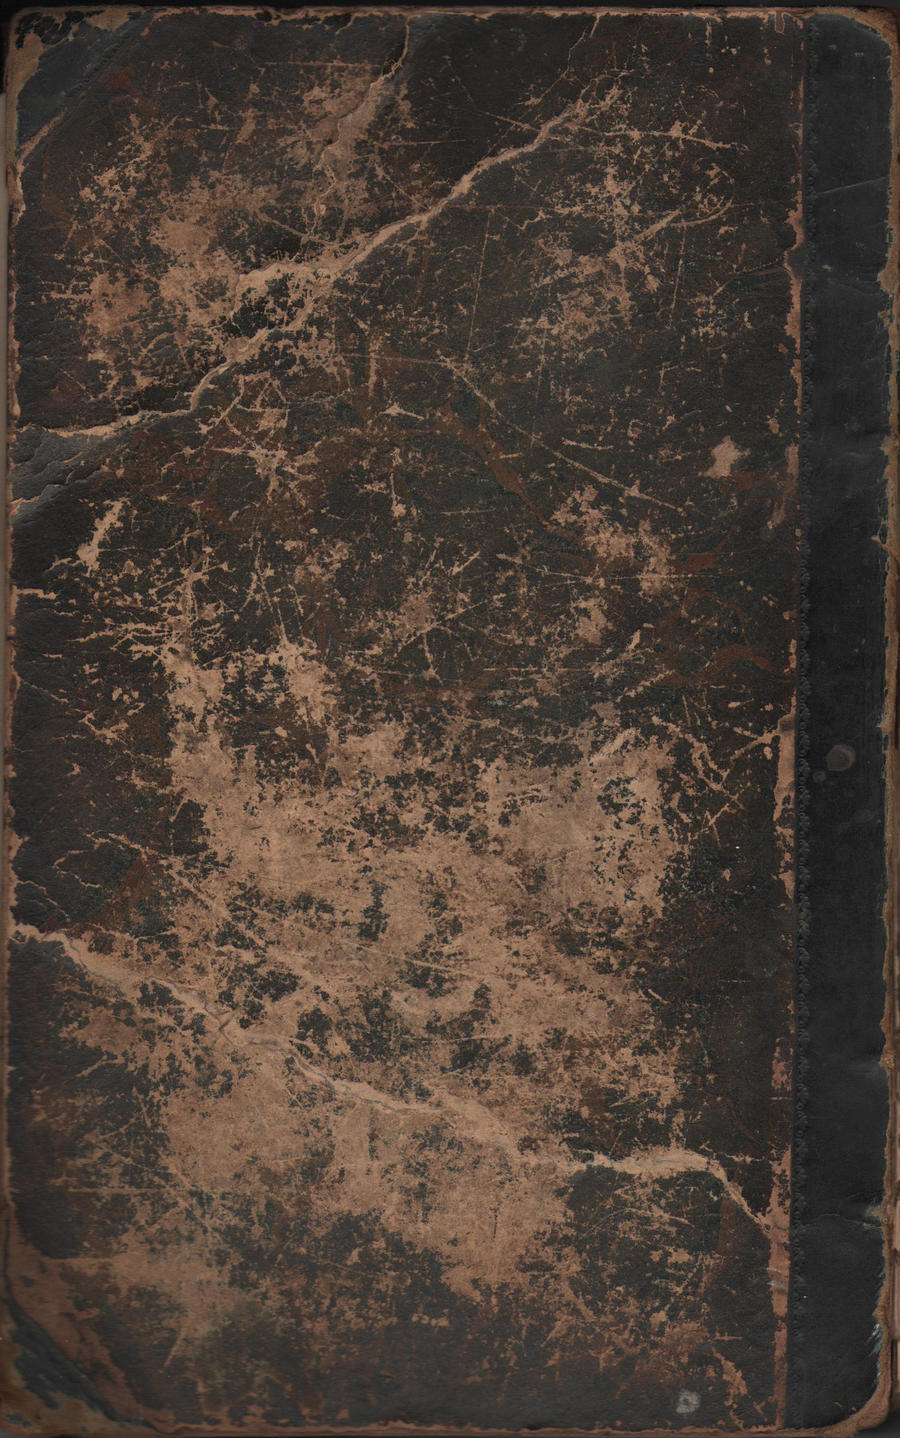 Old Leather Book Cover Texture ~ Old book cover a by generalvyse on deviantart